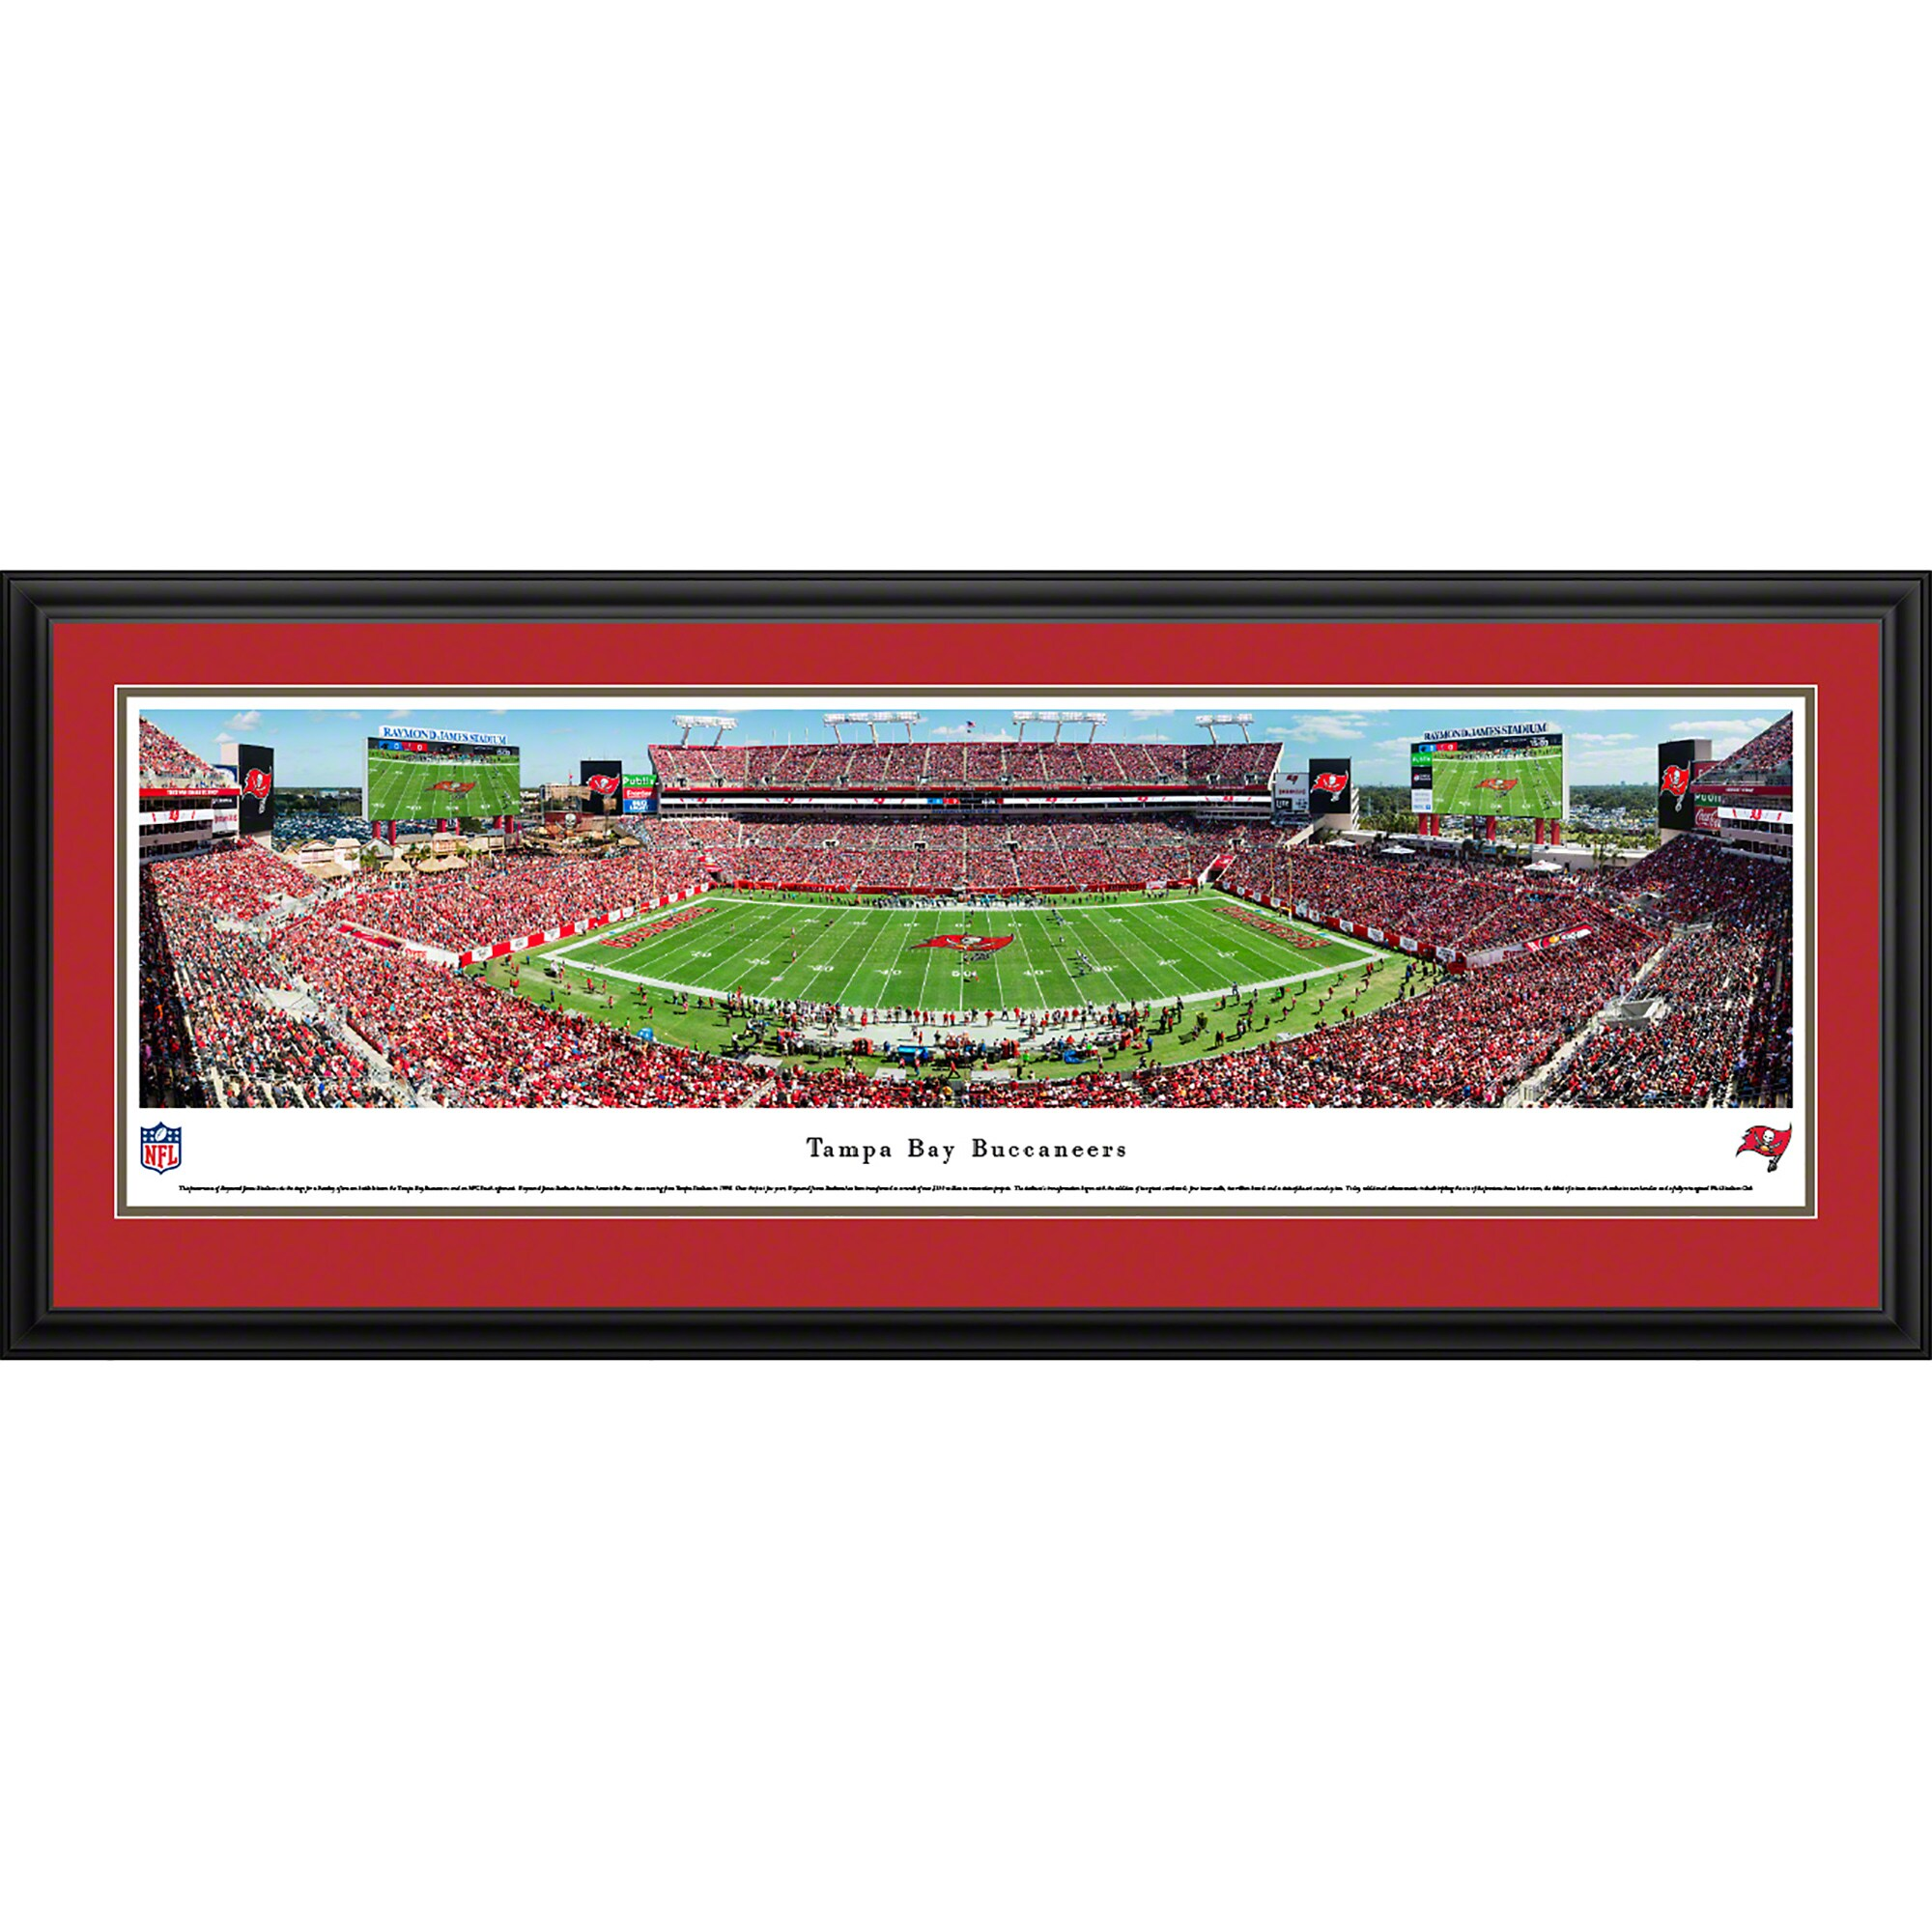 "Tampa Bay Buccaneers 44"" x 18"" 50-Yard Line Deluxe Framed Panoramic"